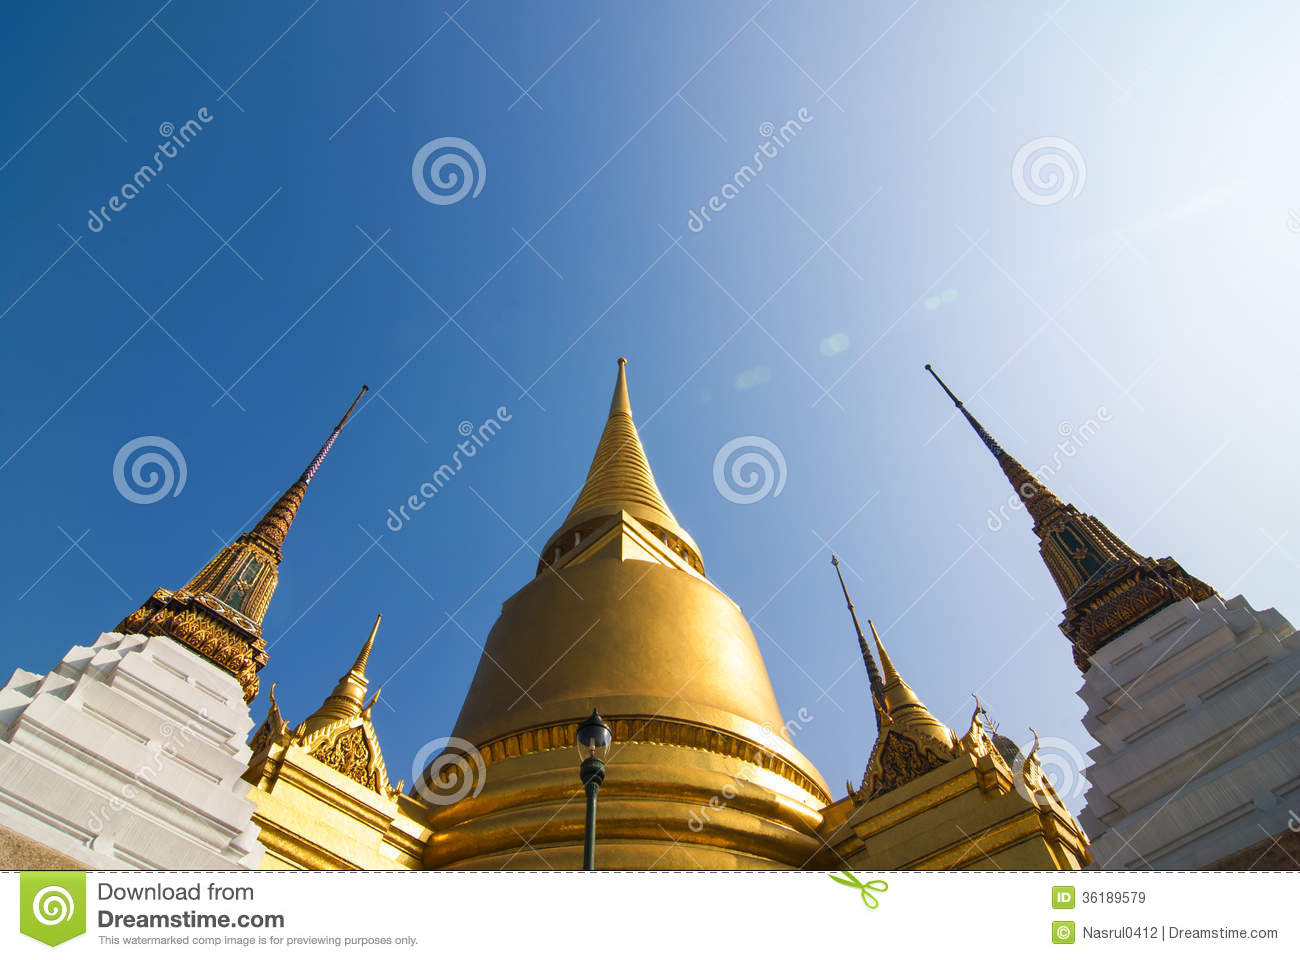 grand gorge buddhist personals Craigslist provides local classifieds and forums for jobs, housing, for sale, personals, services, local community, and events.